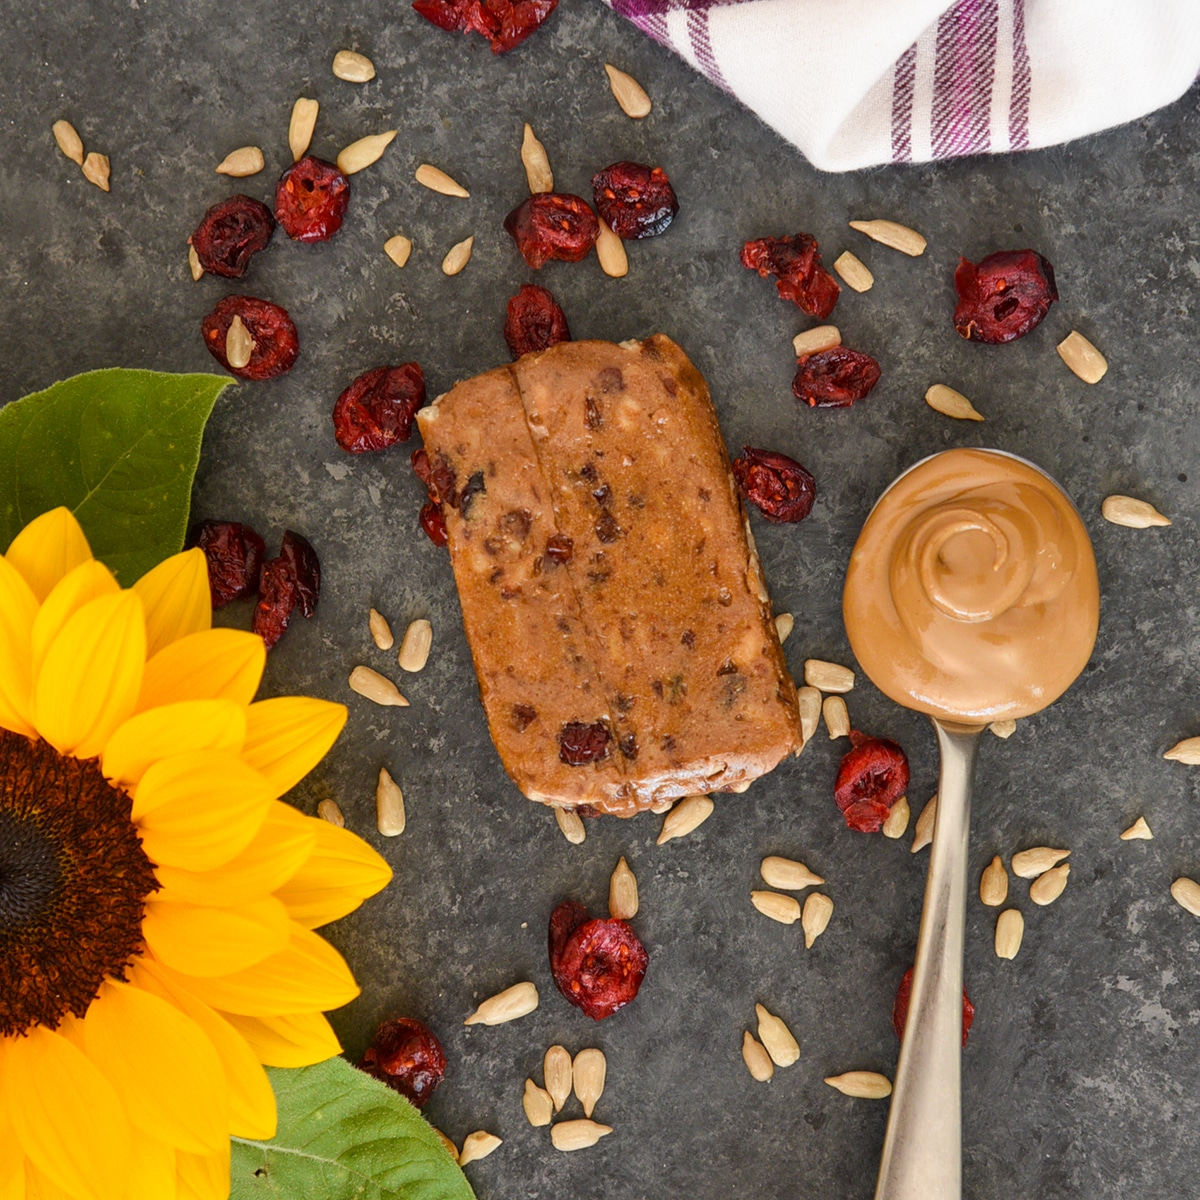 Rowdy Prebiotic Foods Releases Sunflower Butter N'Berries Bar